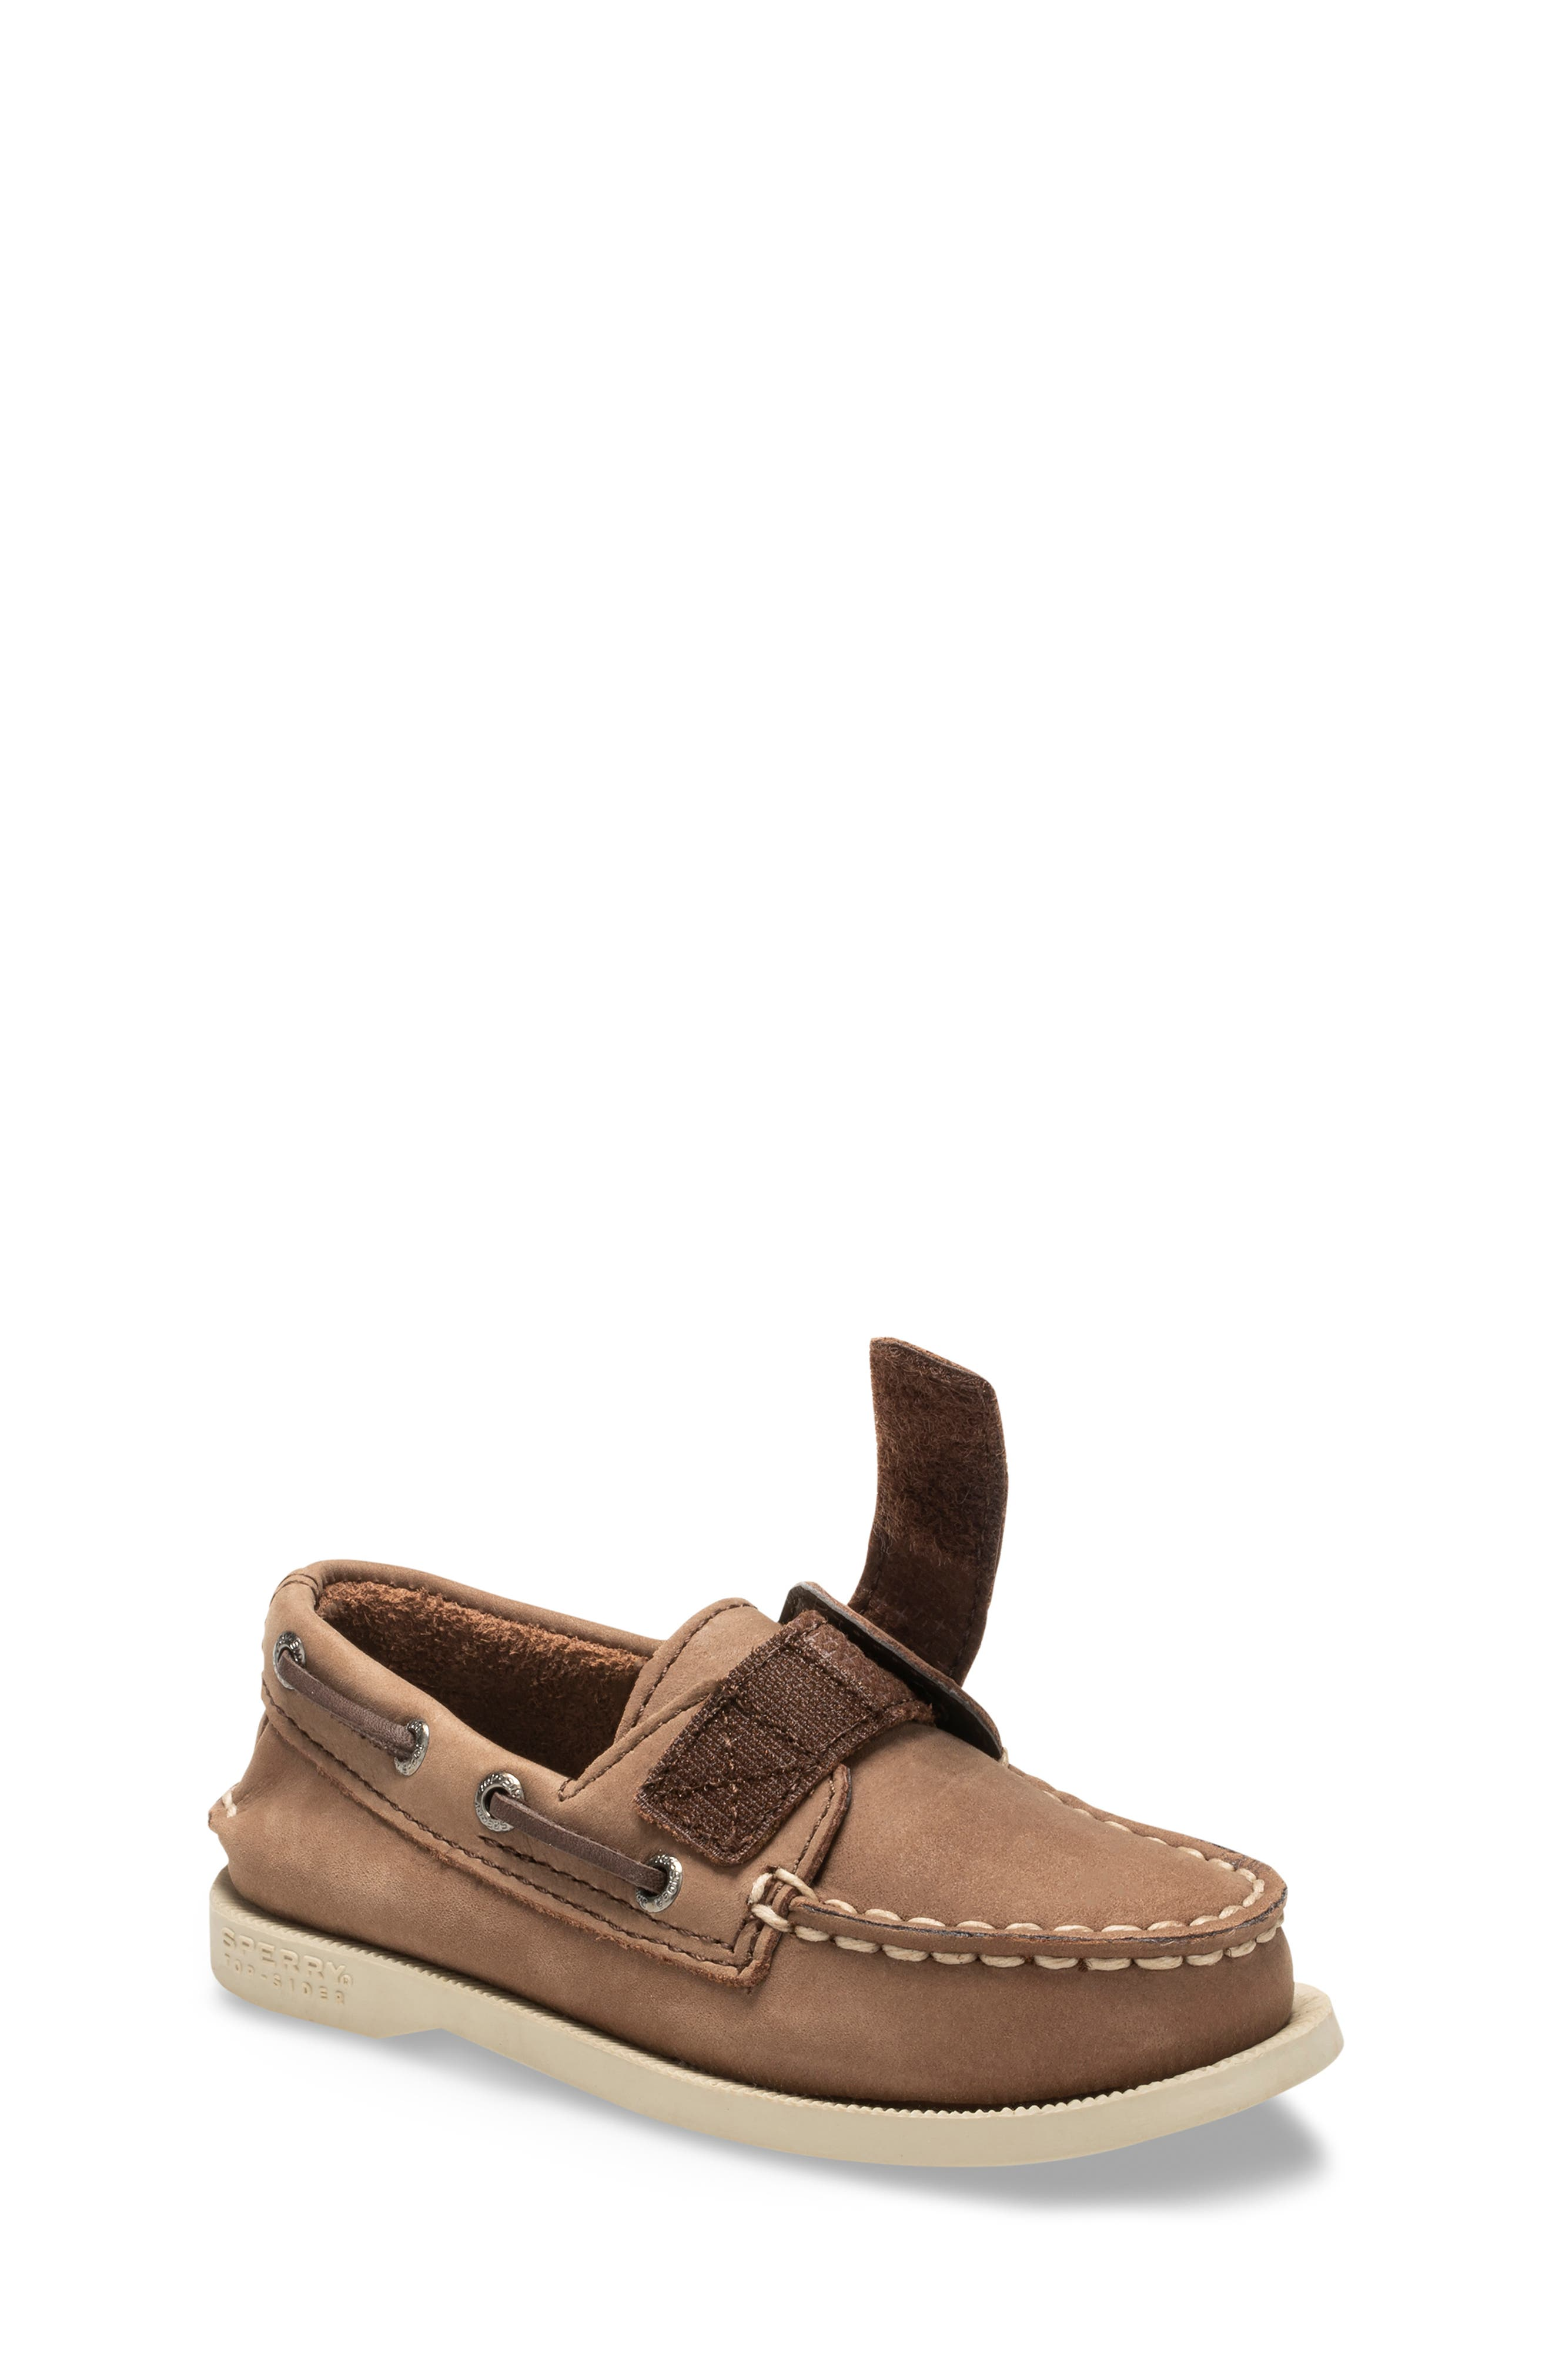 Sperry Top-Sider<sup>®</sup> Kids 'Authentic Original' Boat Shoe,                             Alternate thumbnail 2, color,                             BROWN